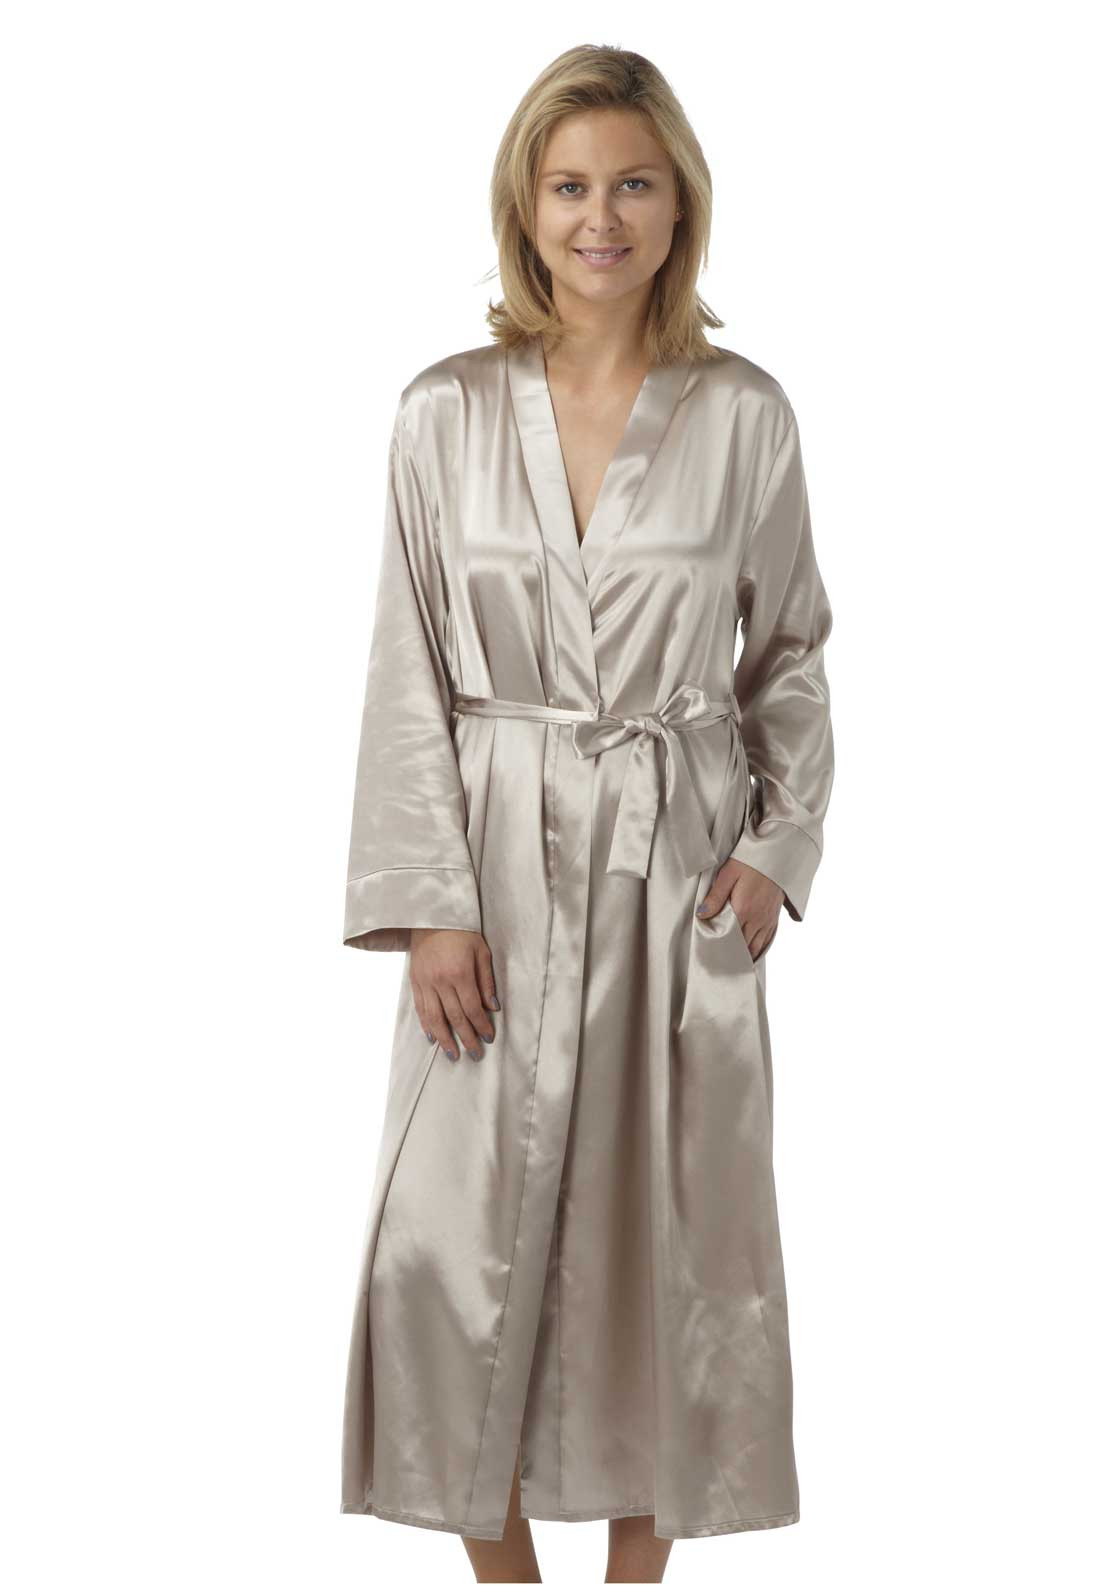 Indigo Sky Lace Trim Satin Dressing Gown, Mocha